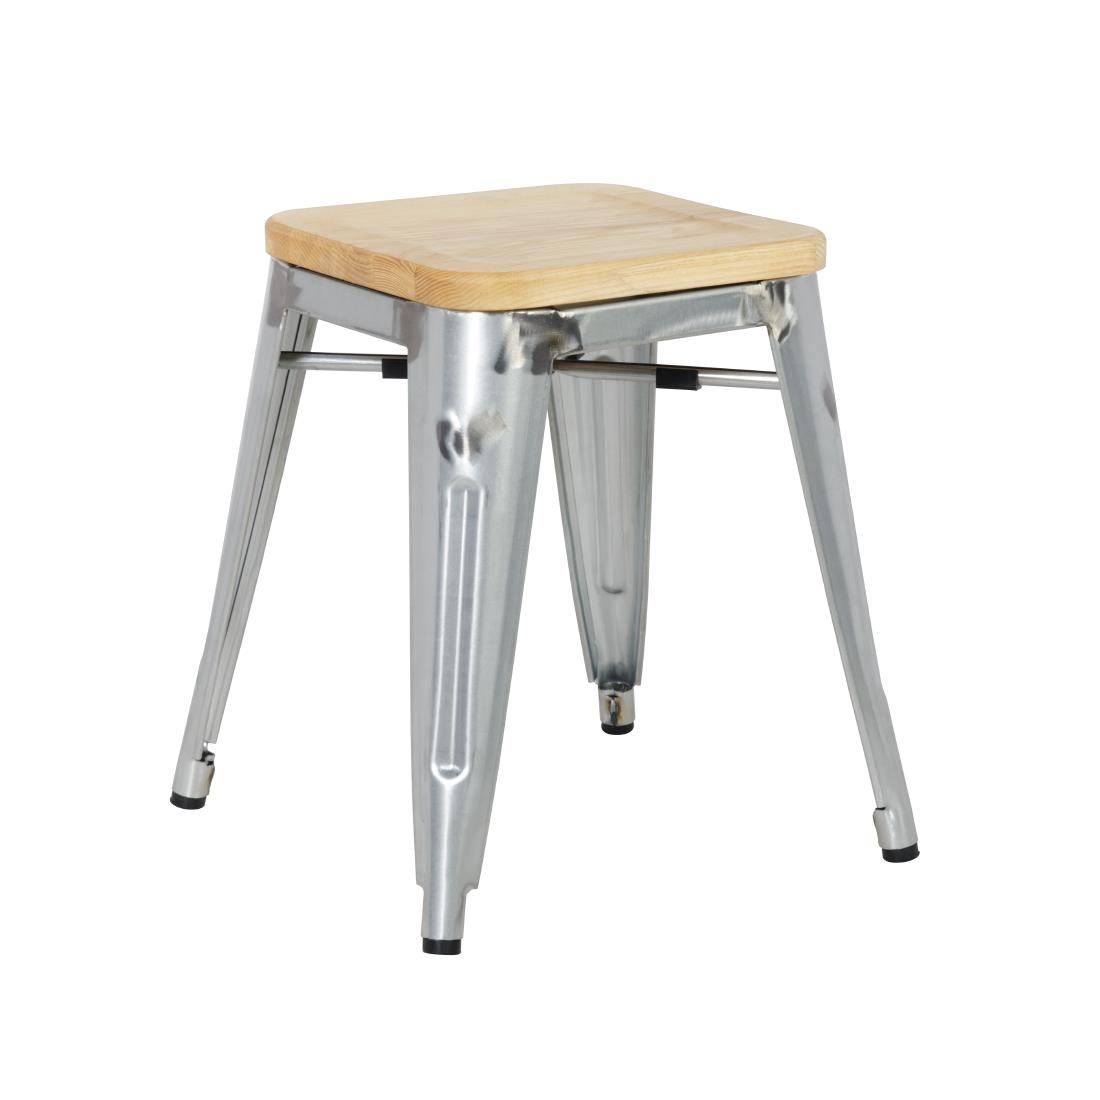 Fabulous Bolero Bistro Low Stools With Wooden Seat Pad Galvanised Steel Pack Of 4 Gmtry Best Dining Table And Chair Ideas Images Gmtryco